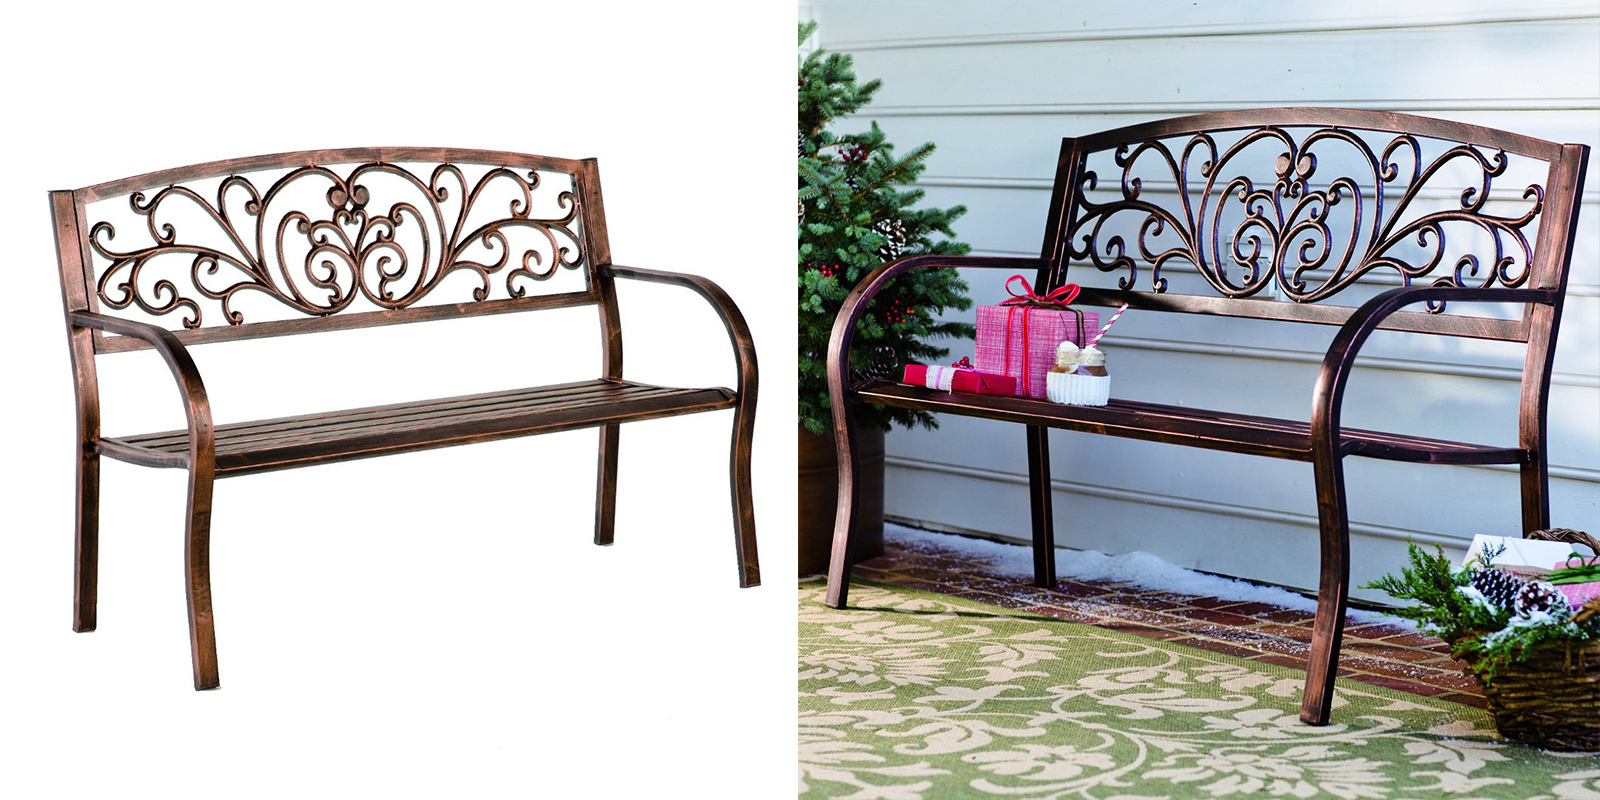 Bronze Finish Blooming Garden Bench — Homebnc In Blooming Iron Garden Benches (View 21 of 25)